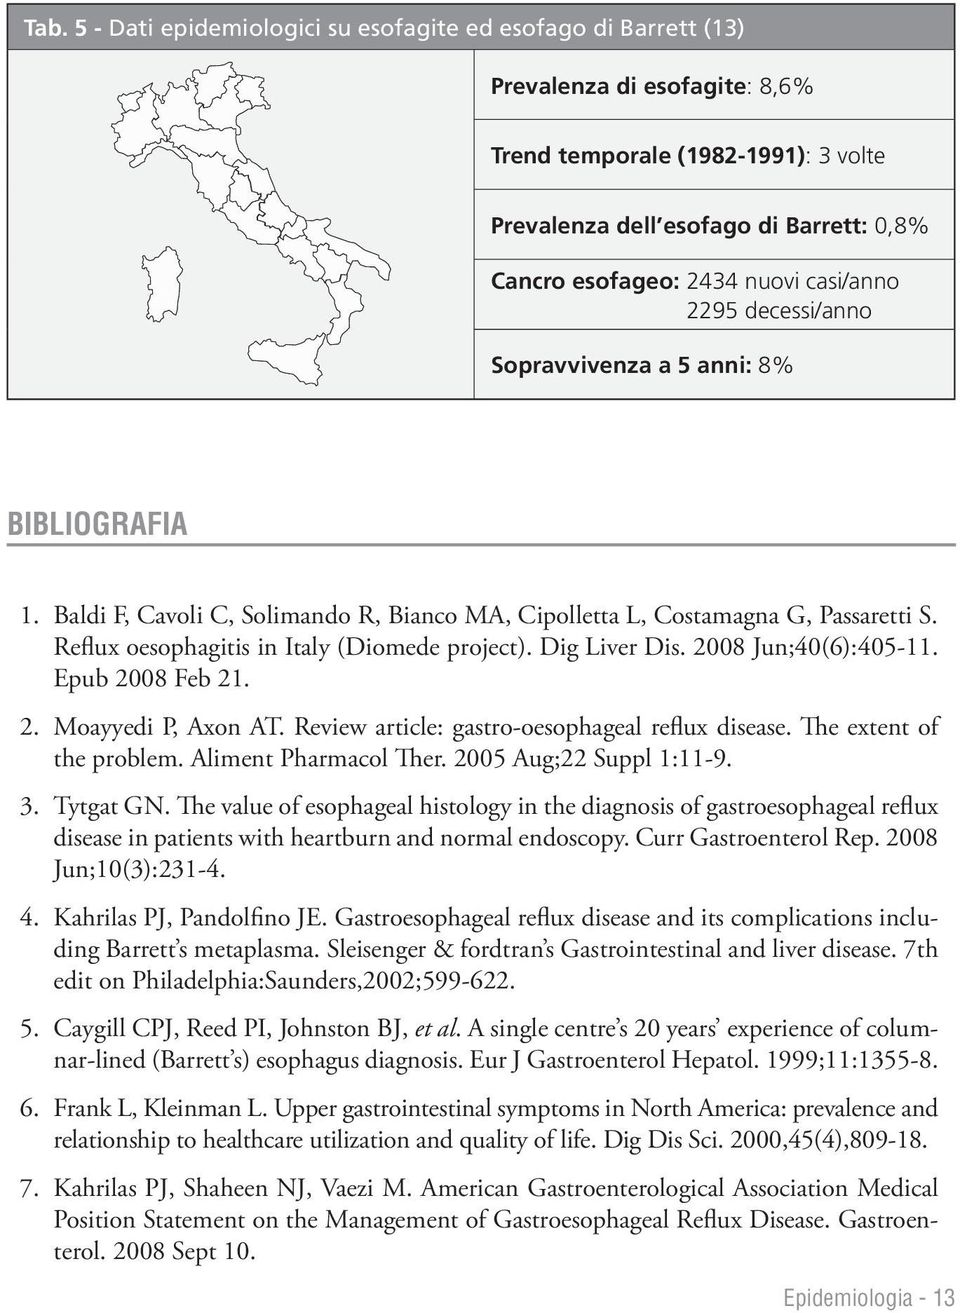 Reflux oesophagitis in Italy (Diomede project). Dig Liver Dis. 2008 Jun;40(6):405-11. Epub 2008 Feb 21. 02. Moayyedi P, Axon AT. Review article: gastro-oesophageal reflux disease.